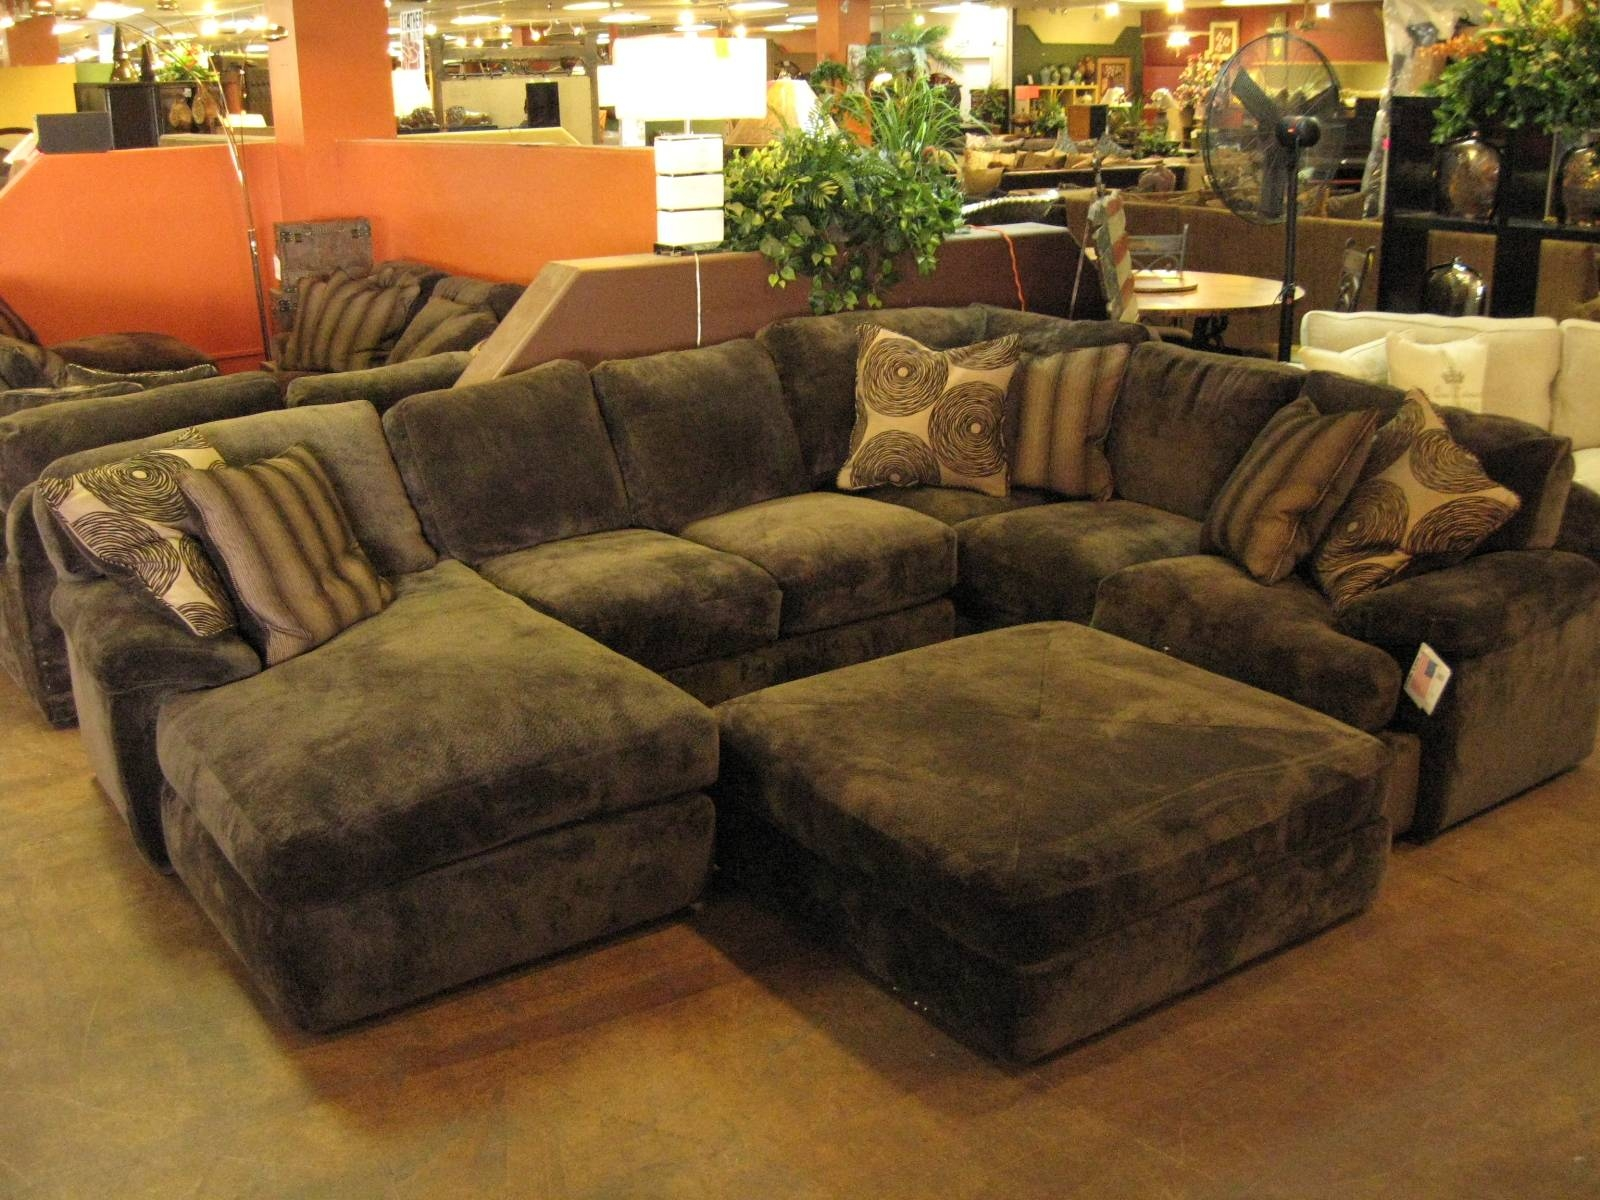 Sofas Center : Wonderful Cheap Rednal Sofa About Remodel Create with Down Filled Sofa Sectional (Image 24 of 25)